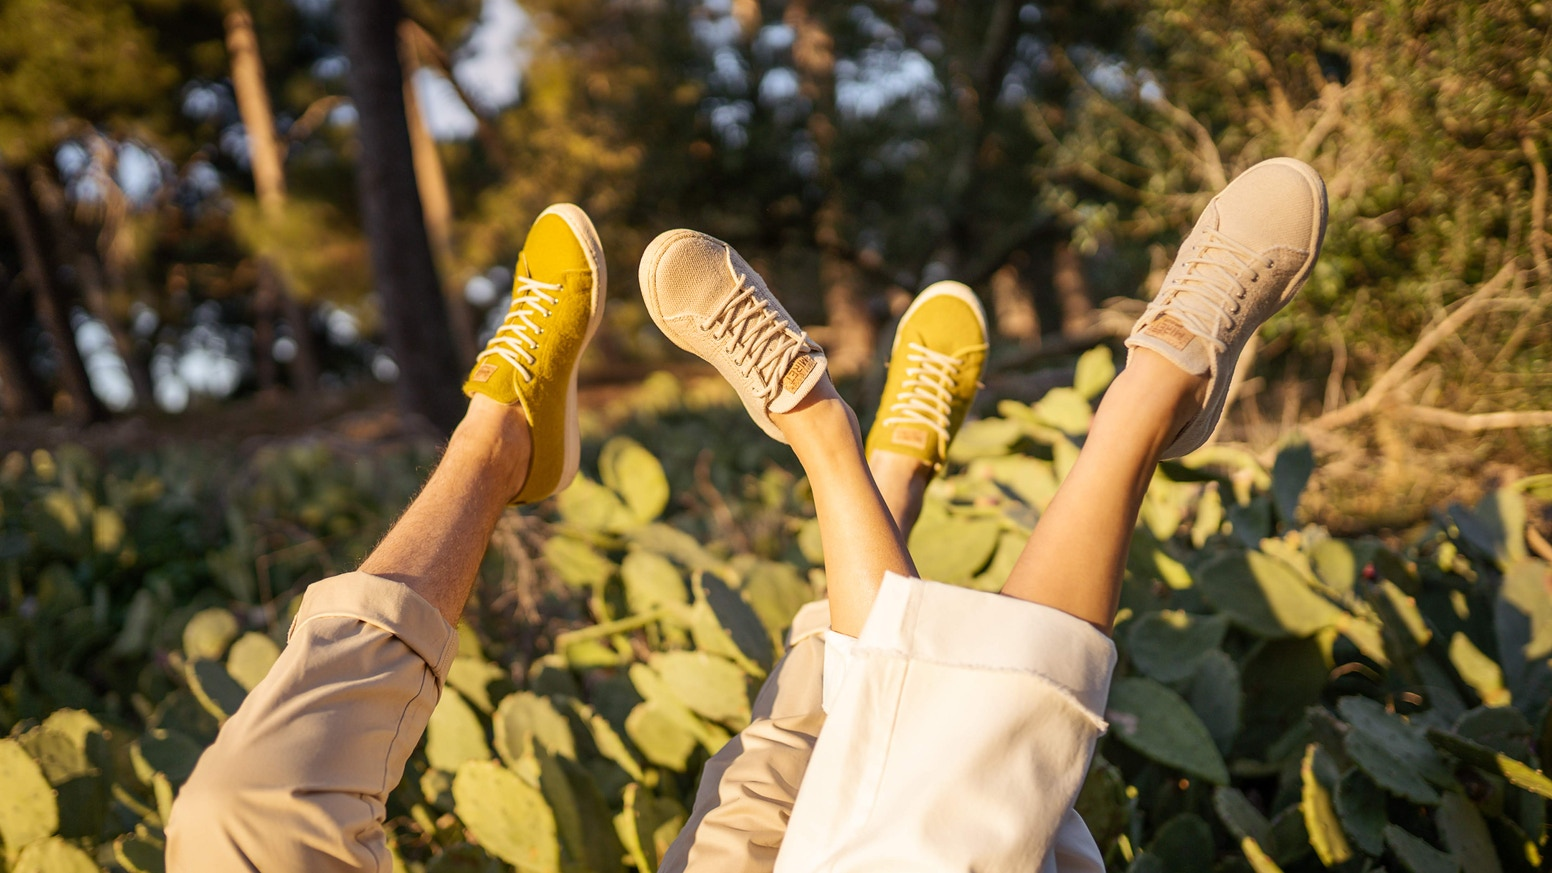 Step into durable and comfy unisex sneakers and leave no toxic legacy to the next generations that will walk the Earth